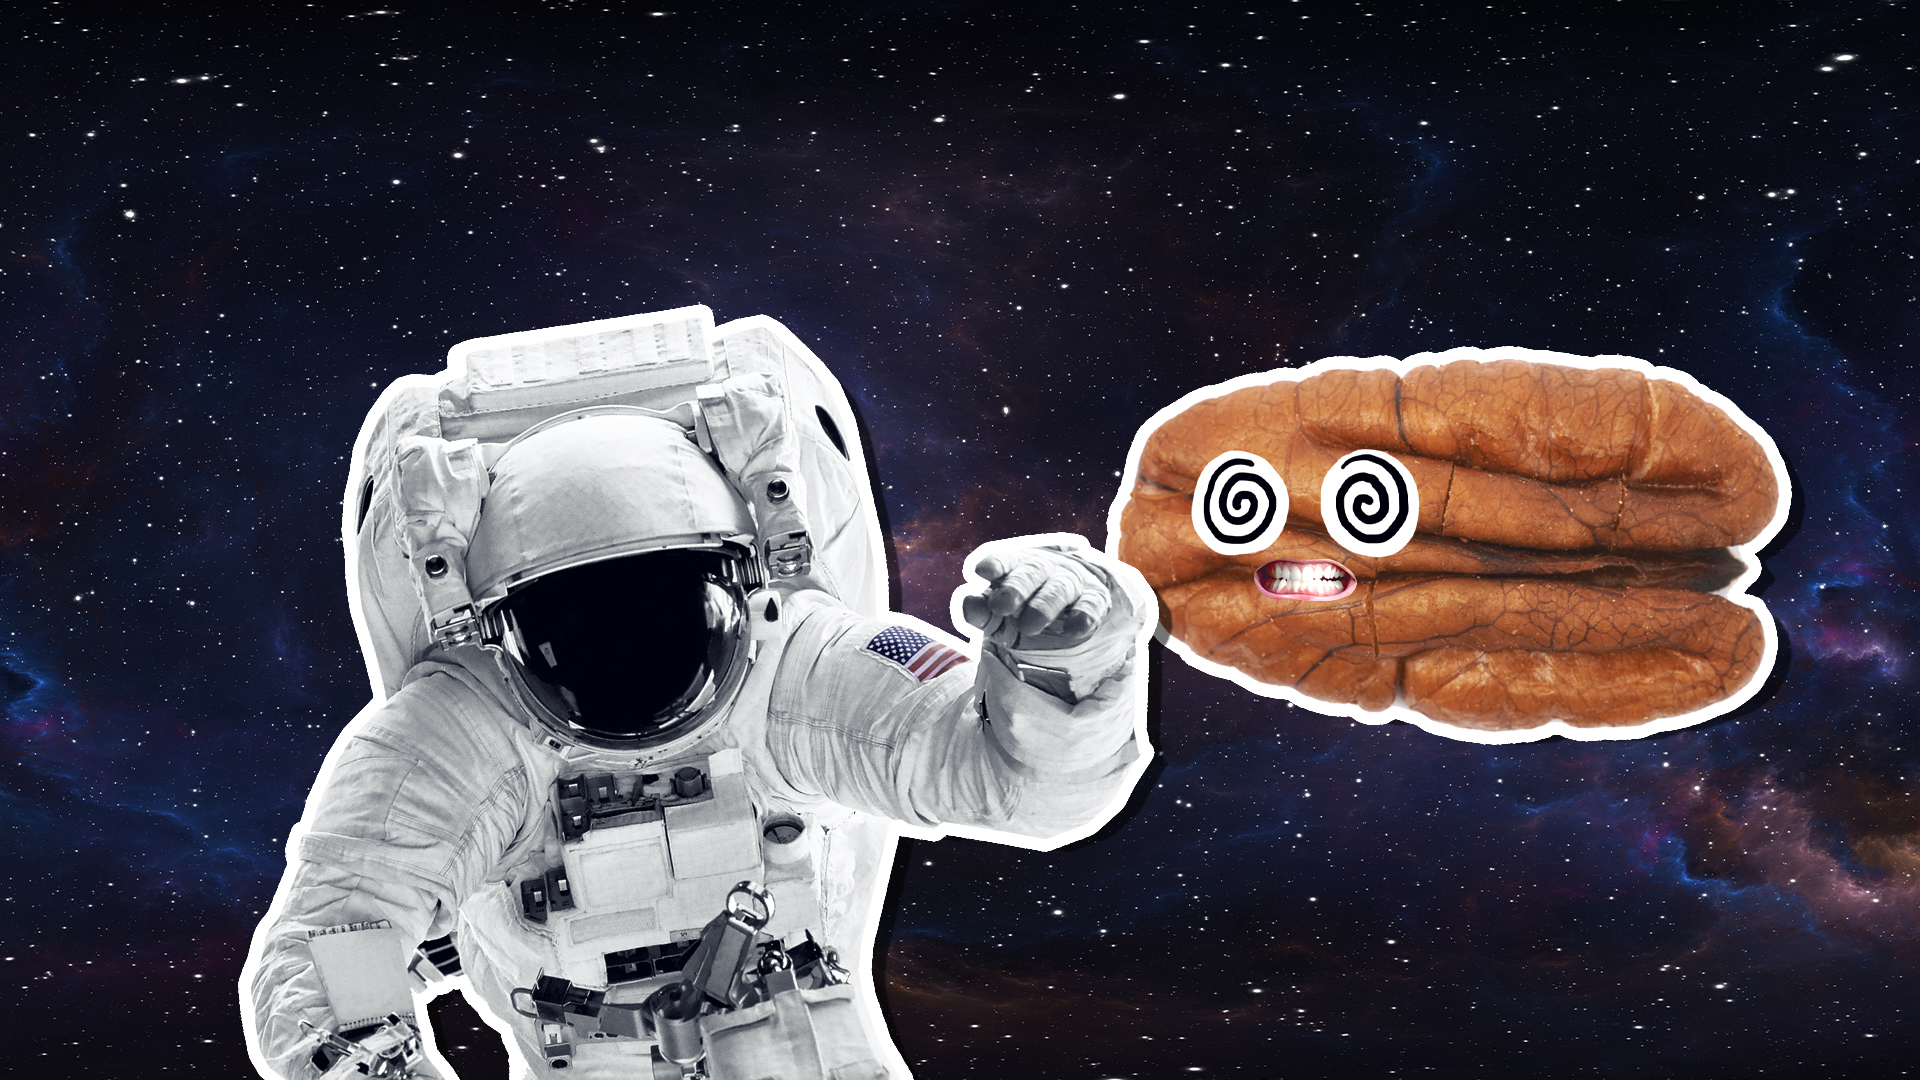 A pecan and astronaut in space